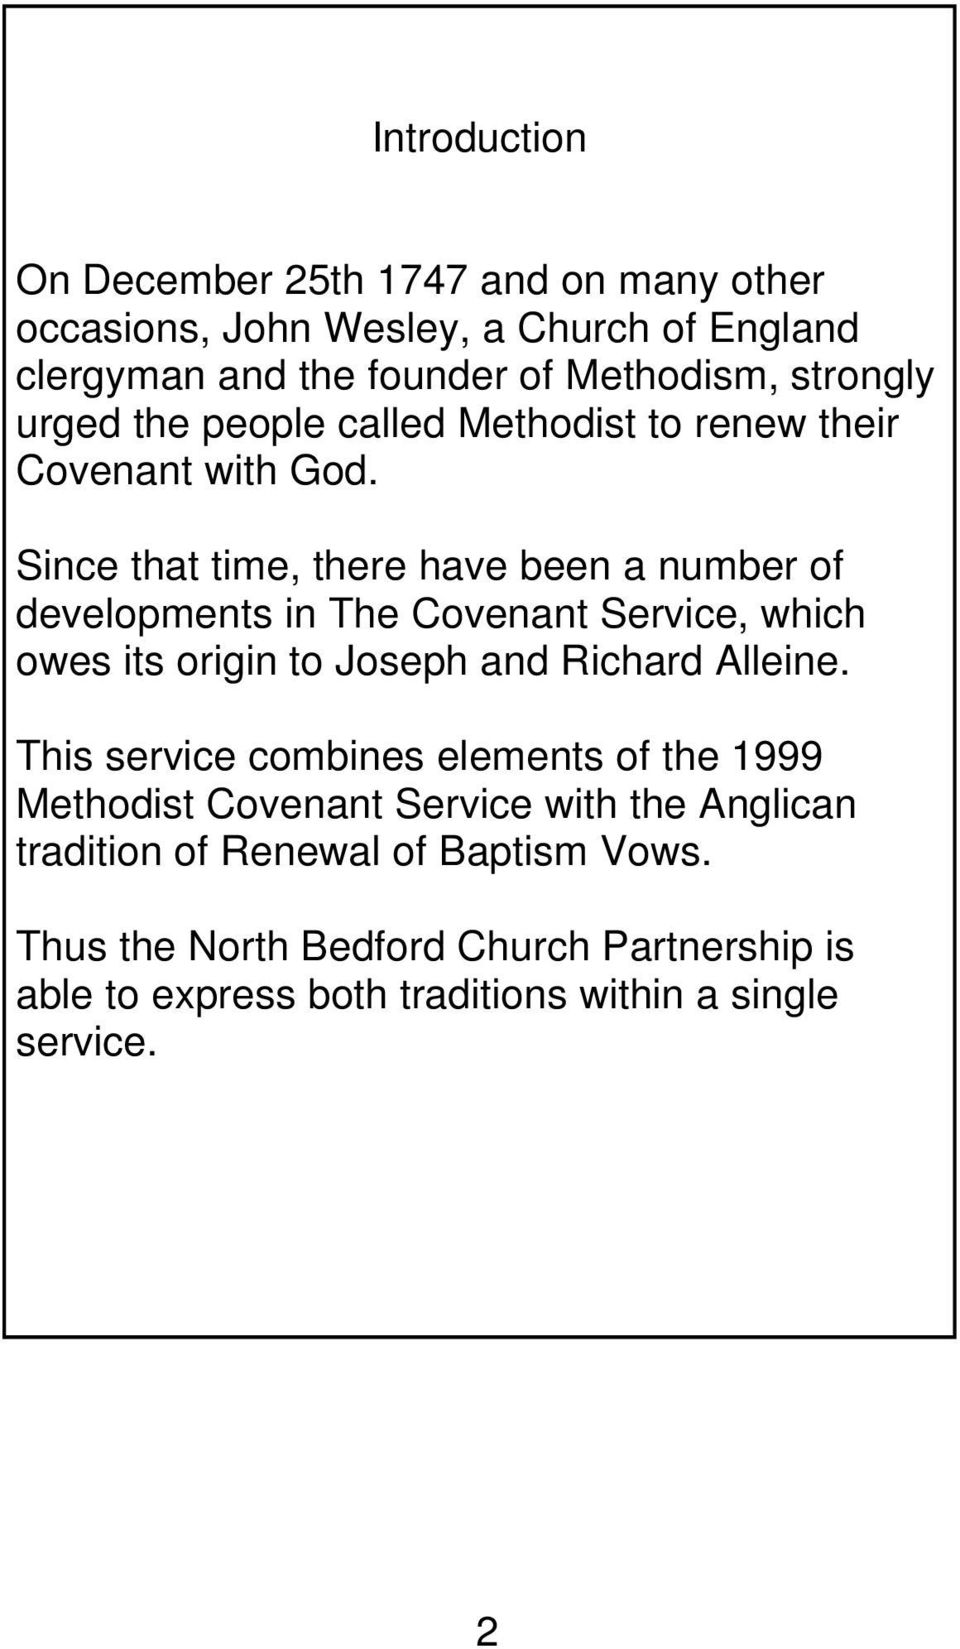 Since that time, there have been a number of developments in The Covenant Service, which owes its origin to Joseph and Richard Alleine.